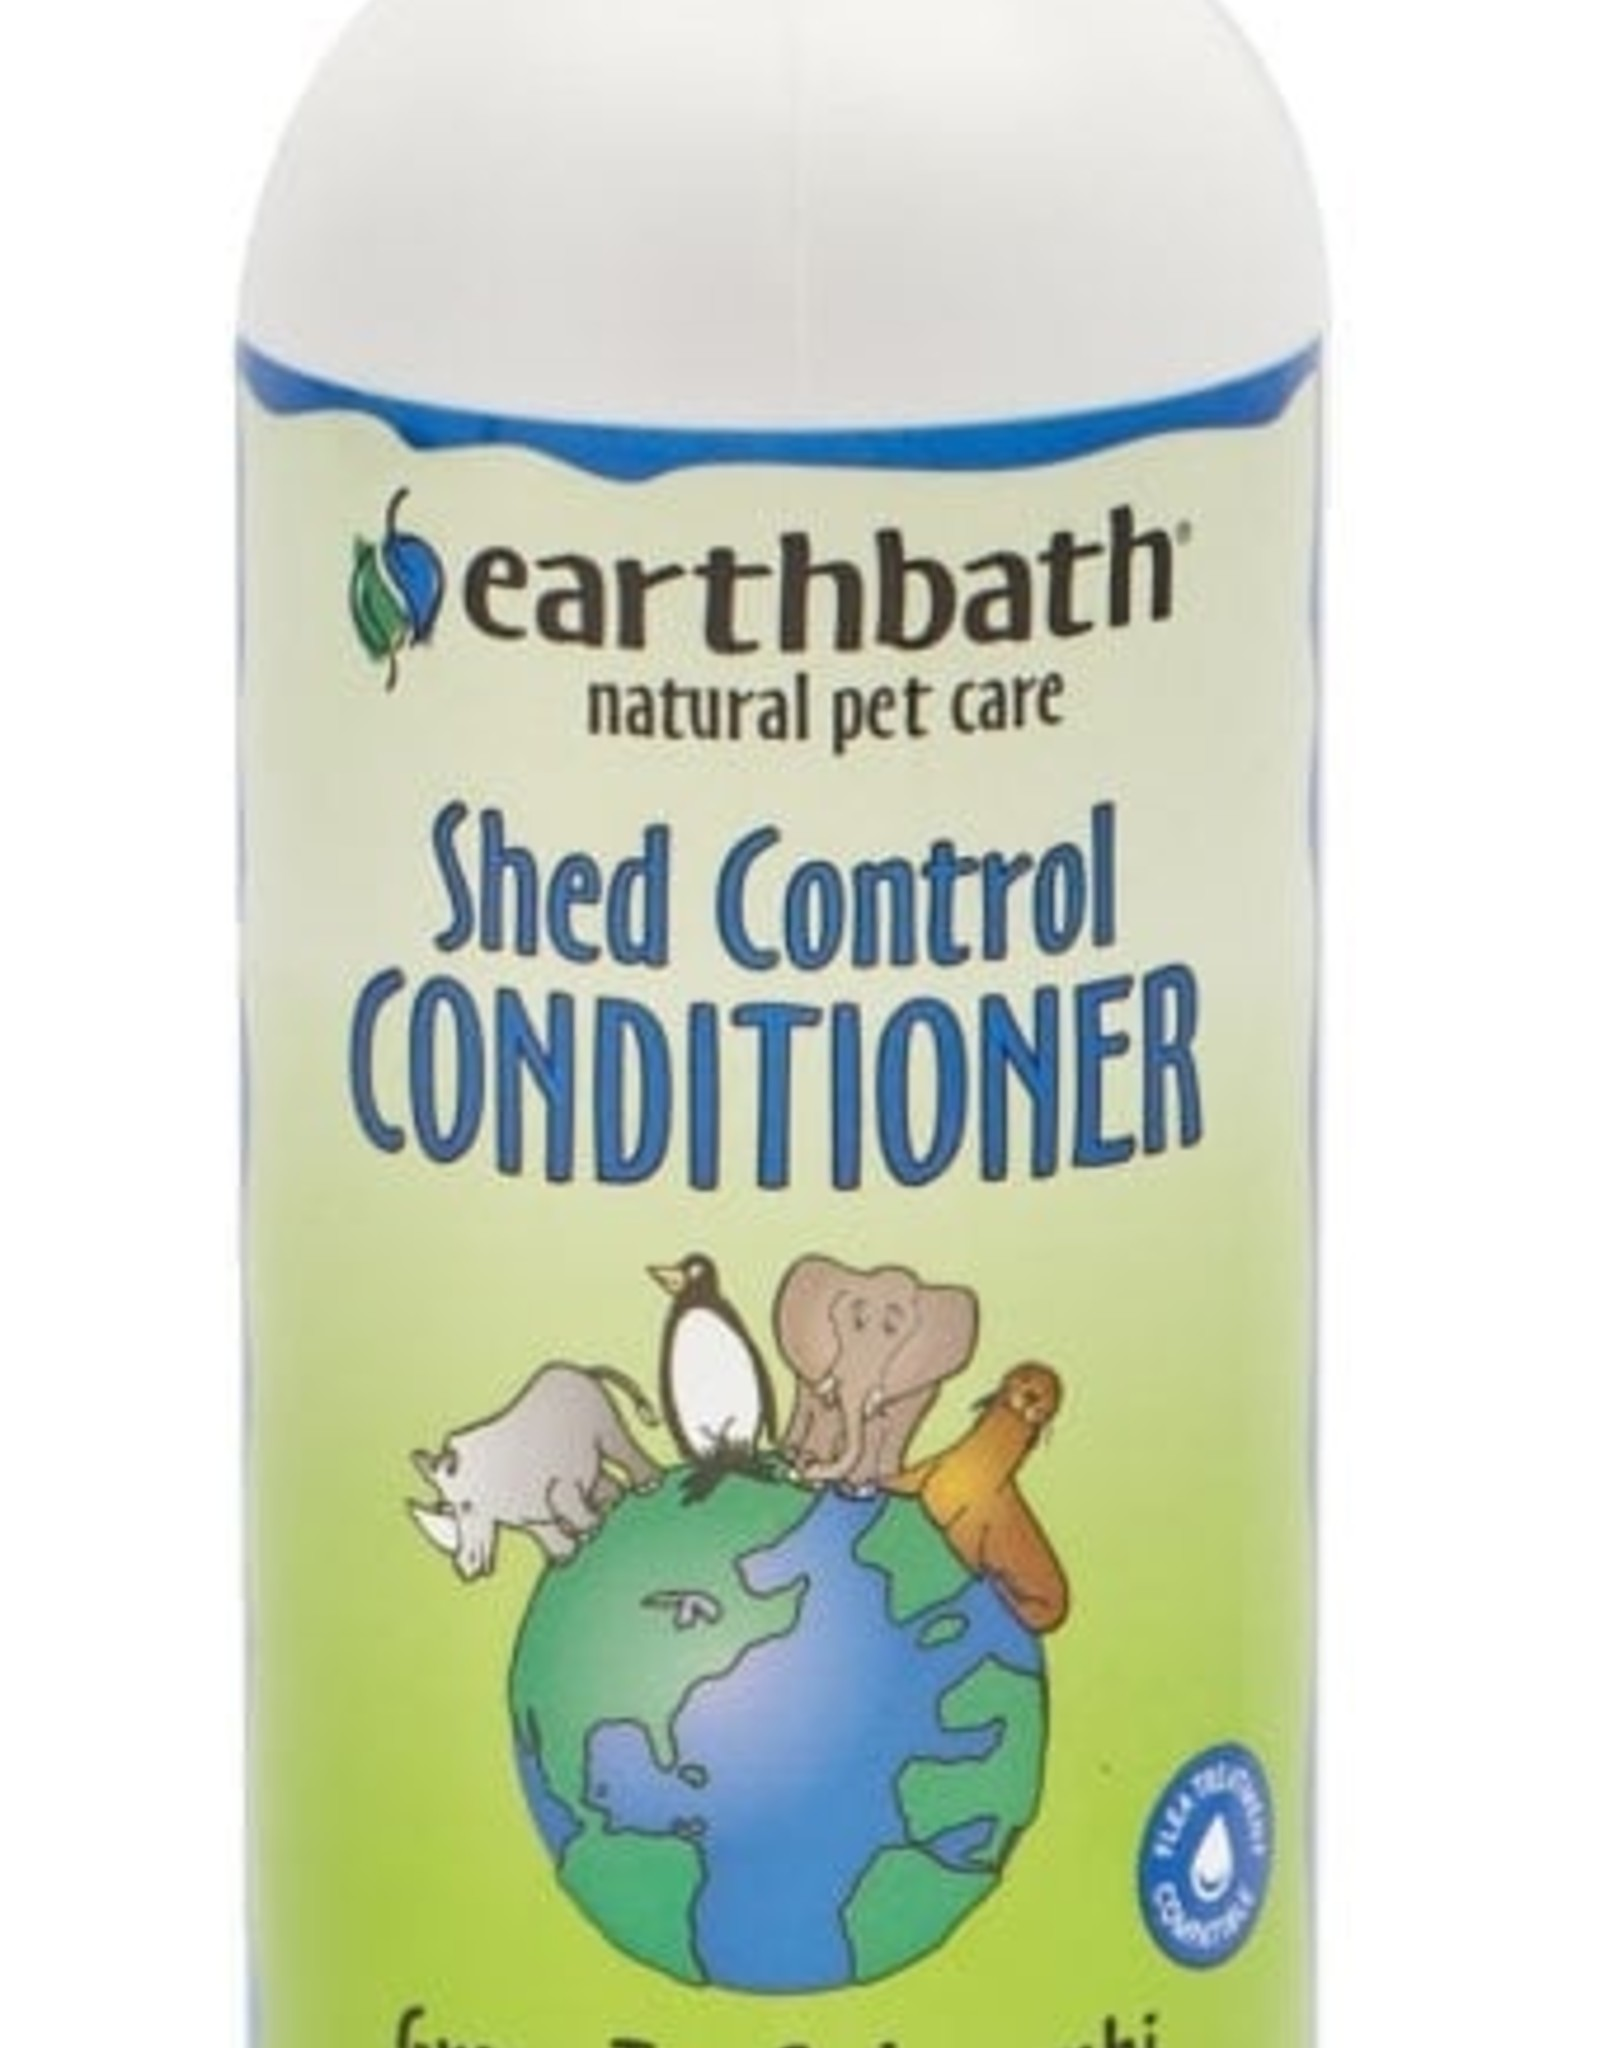 earthbath Shed Control Conditioner- 16oz